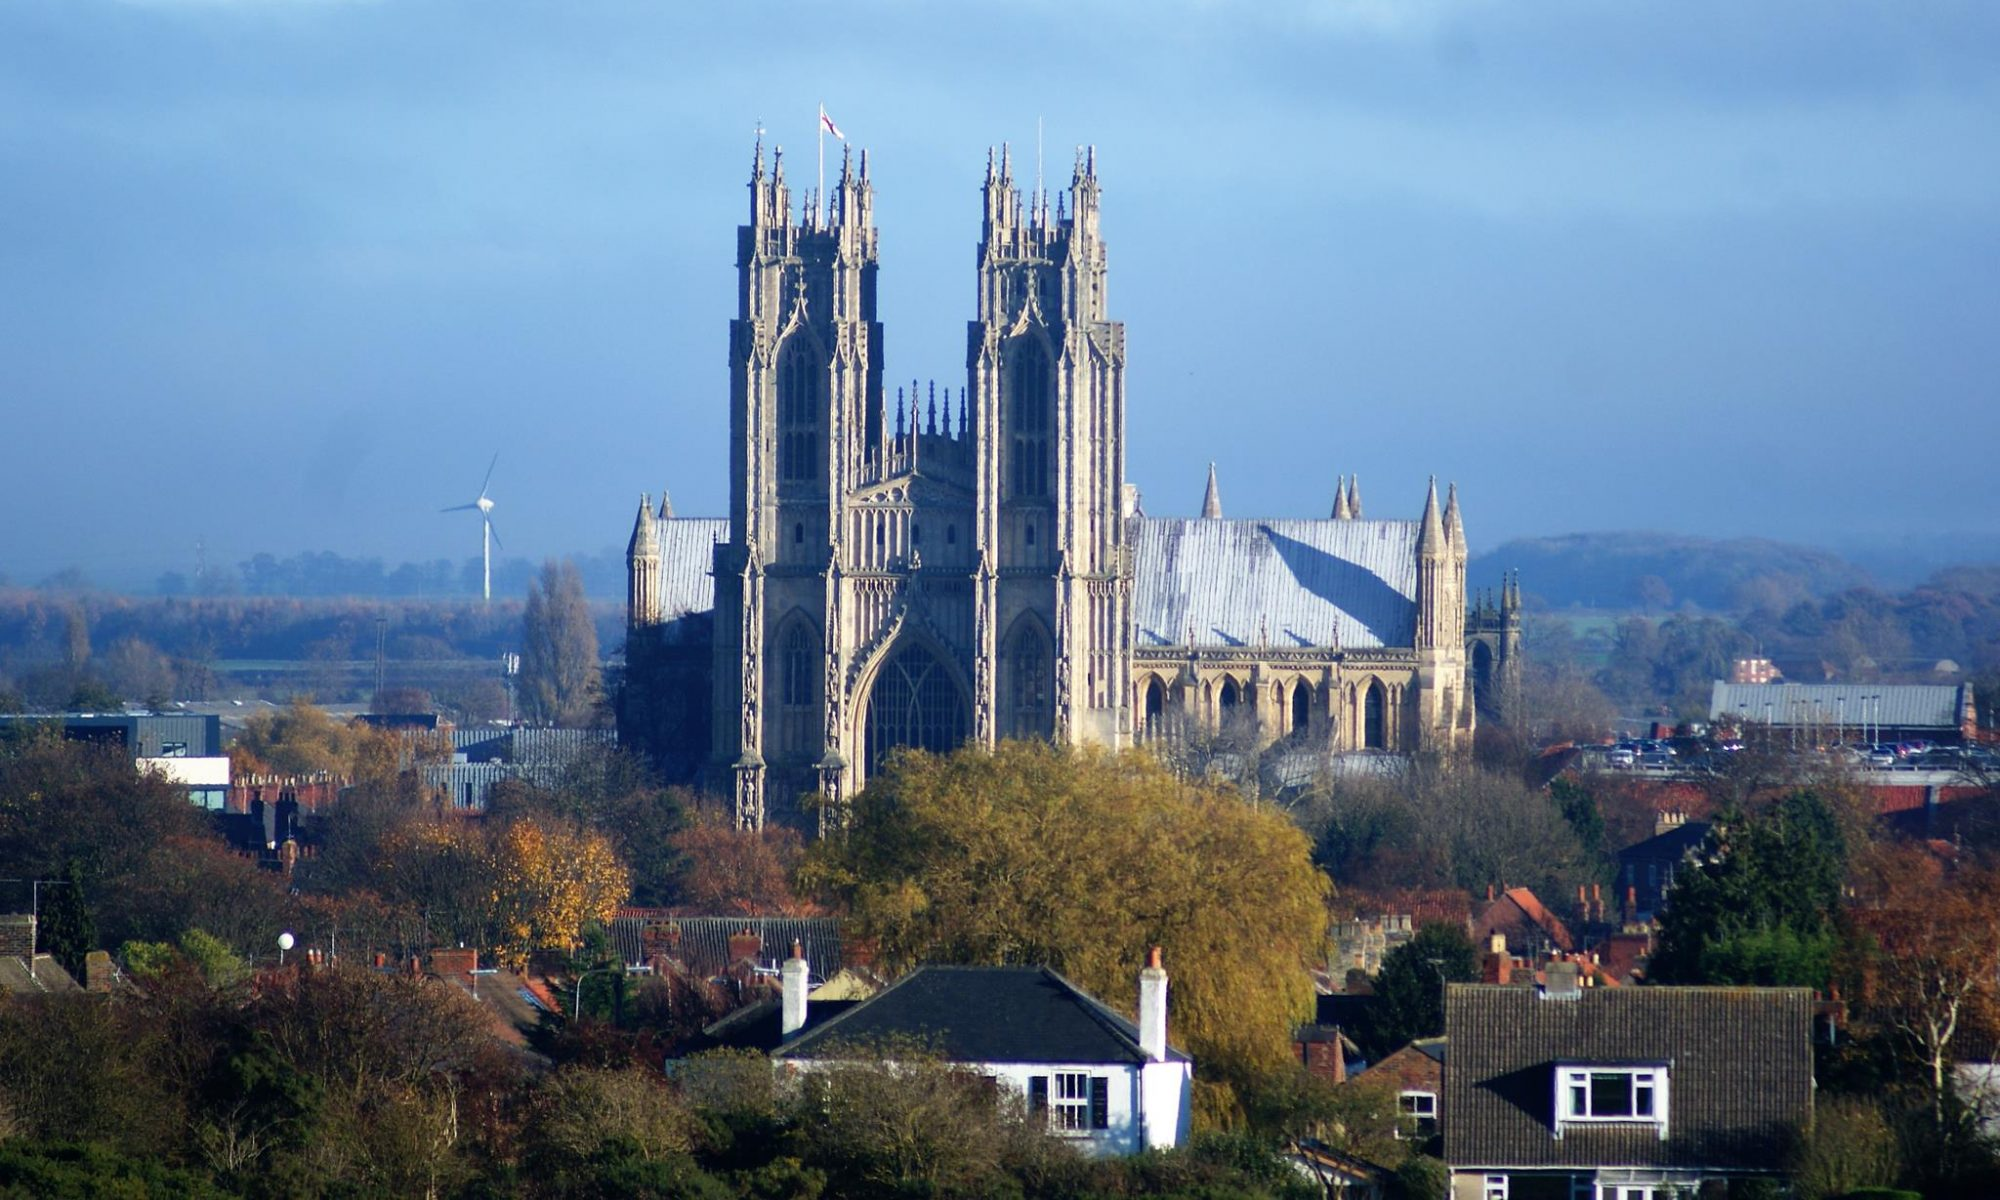 Spend a day in Beverley, East Yorkshire